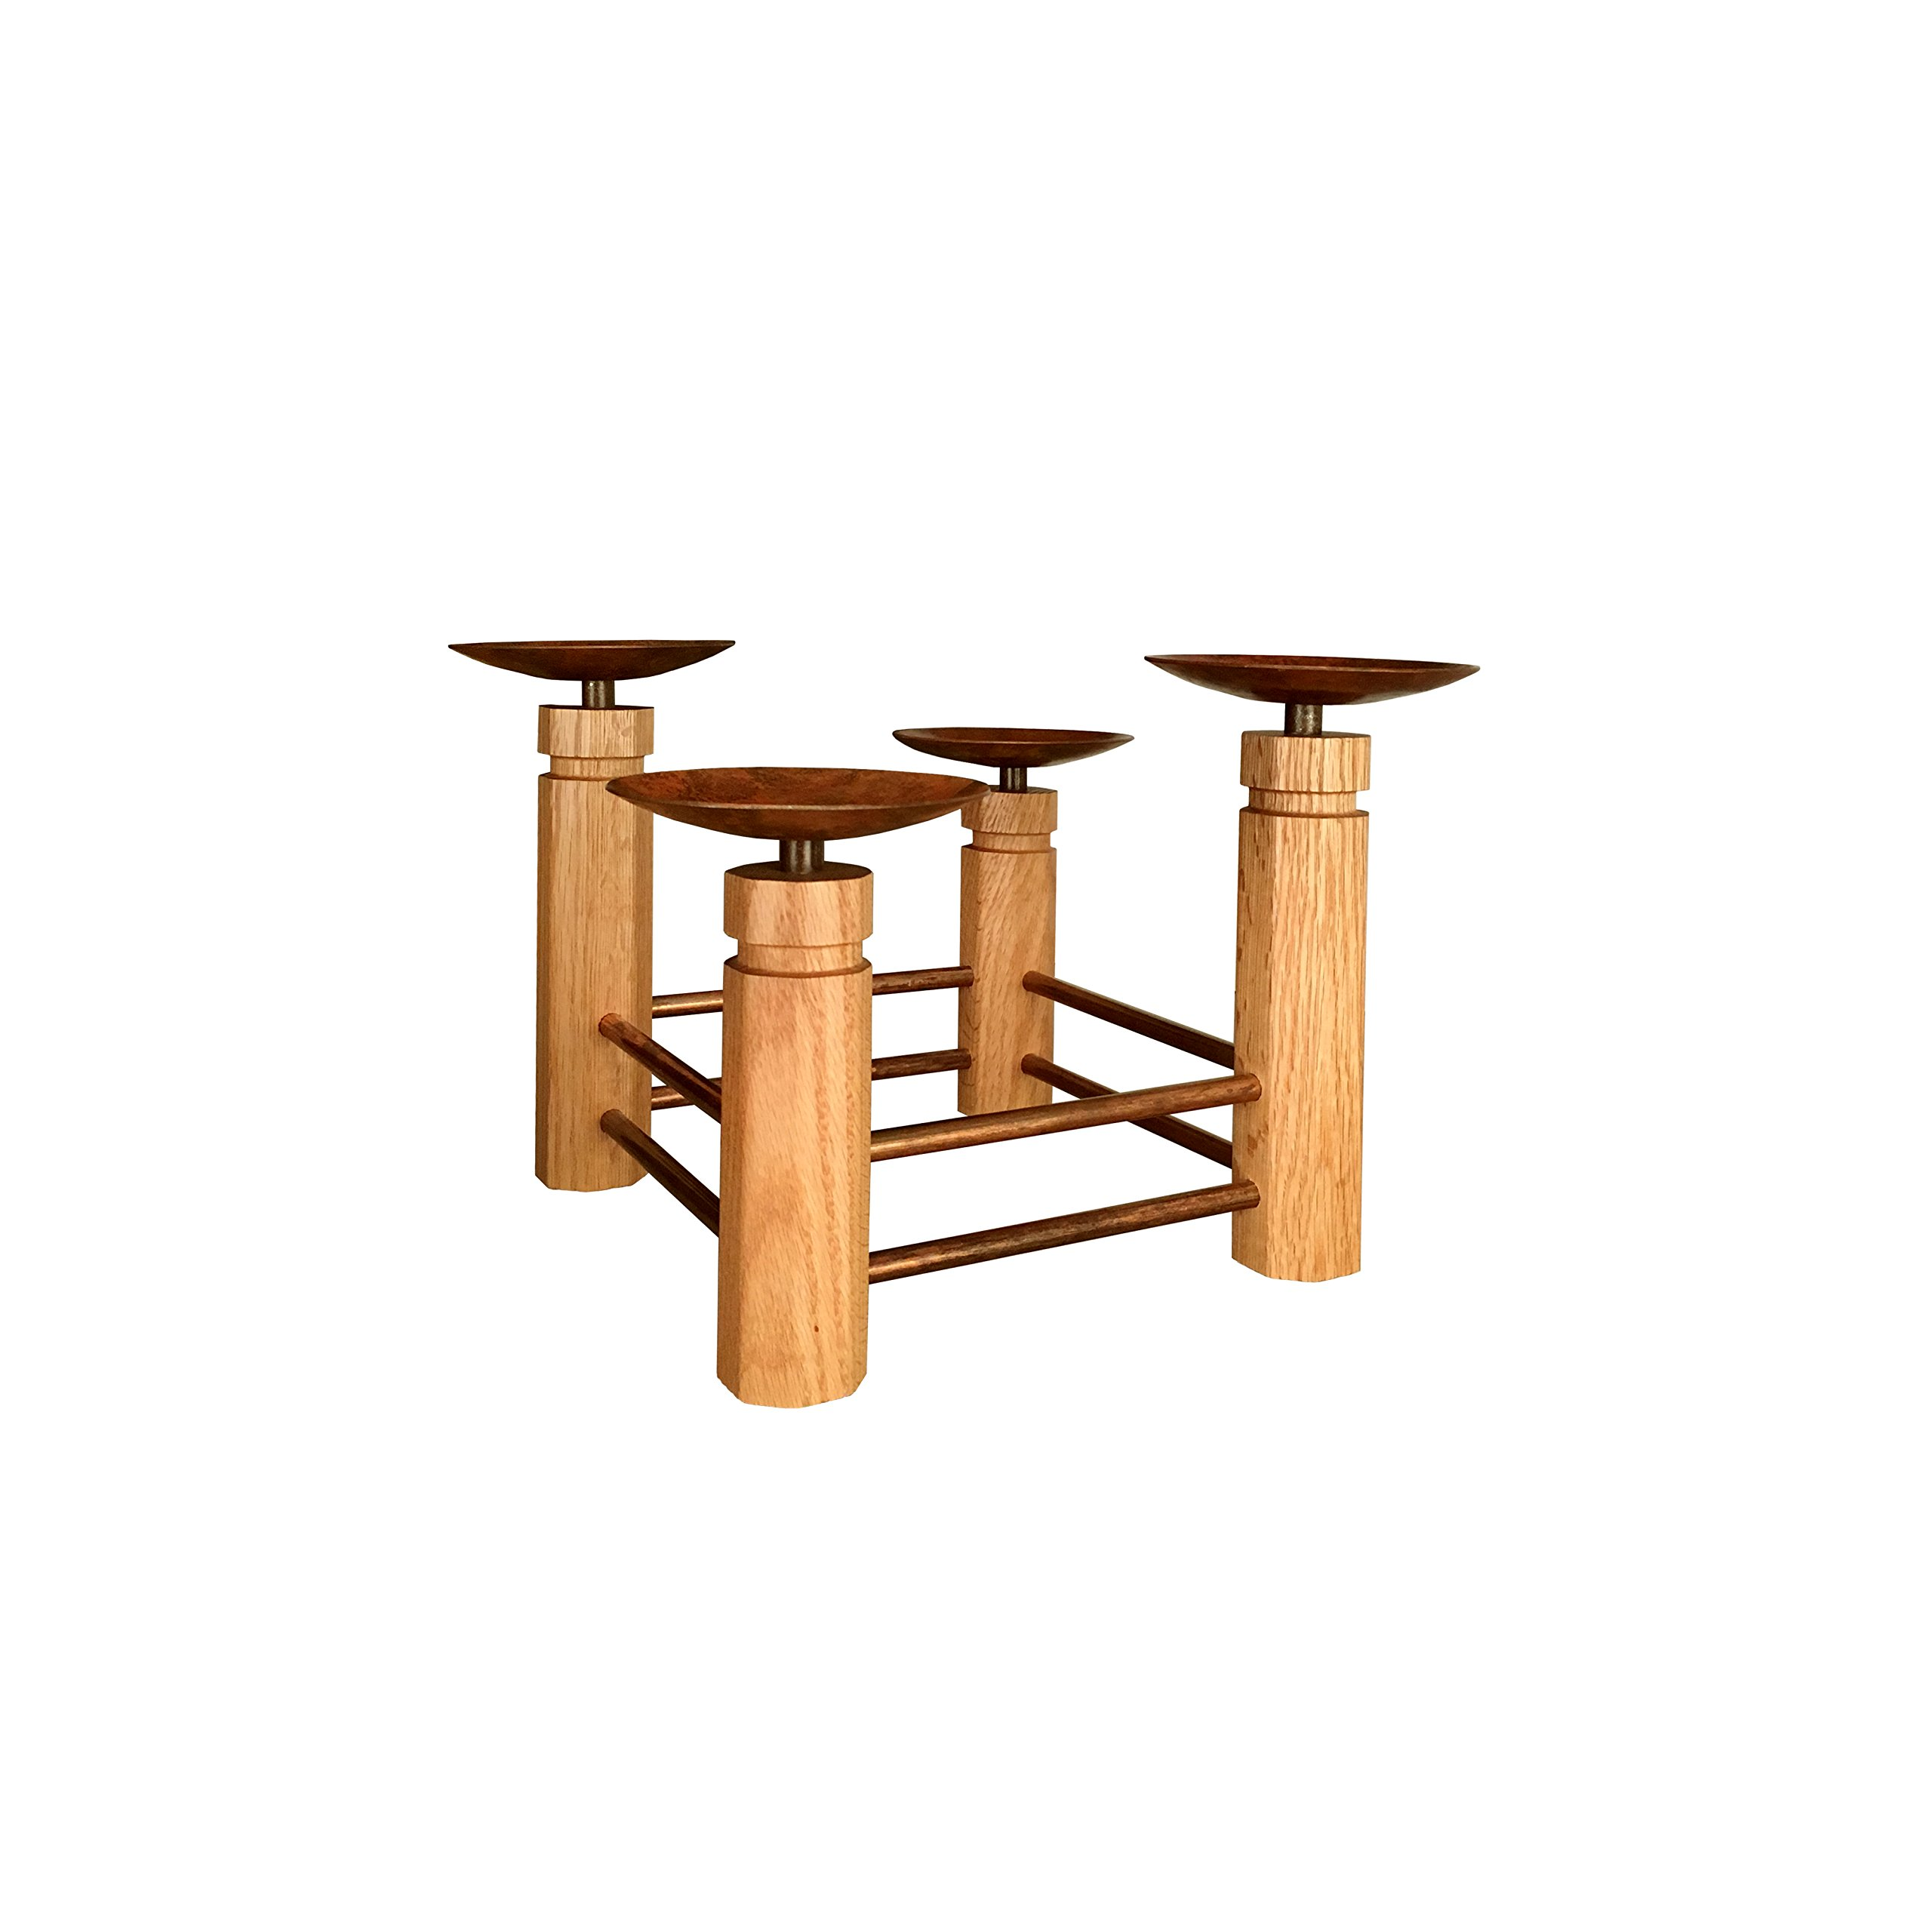 Two-tier Corral Advent Stand. Red oak and patinated brass. Made in America. by Marklin Candle